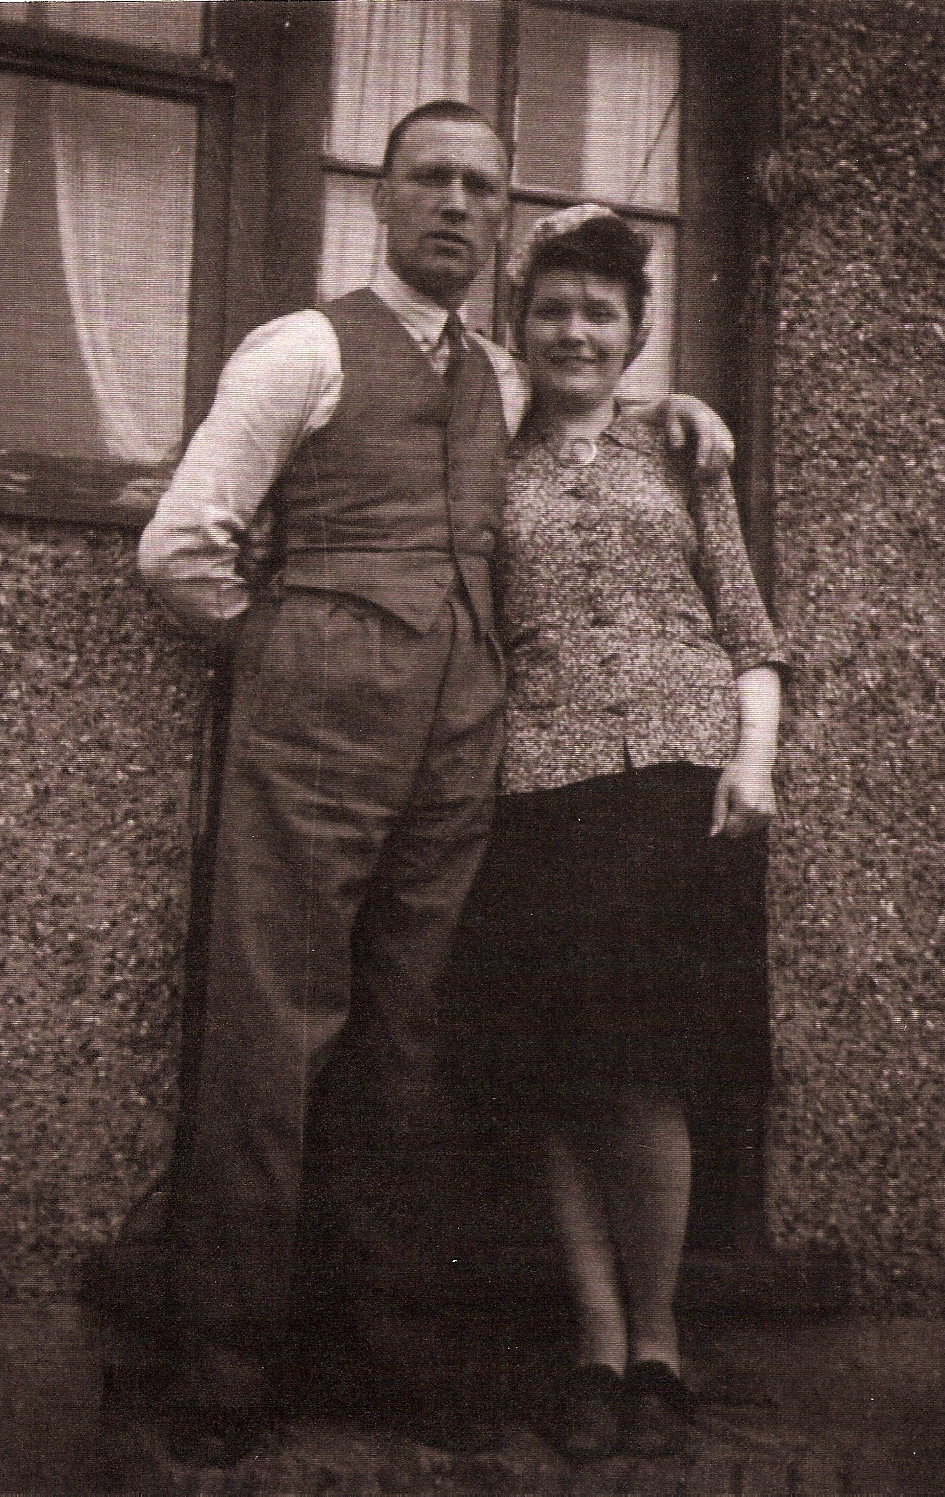 My grandparents Charles and Doris just after WWII. My Nan was a talented seamstress and made dresses for my Mum just from a description. During the war she made planes; many seamstresses did as they could follow construction patterns.